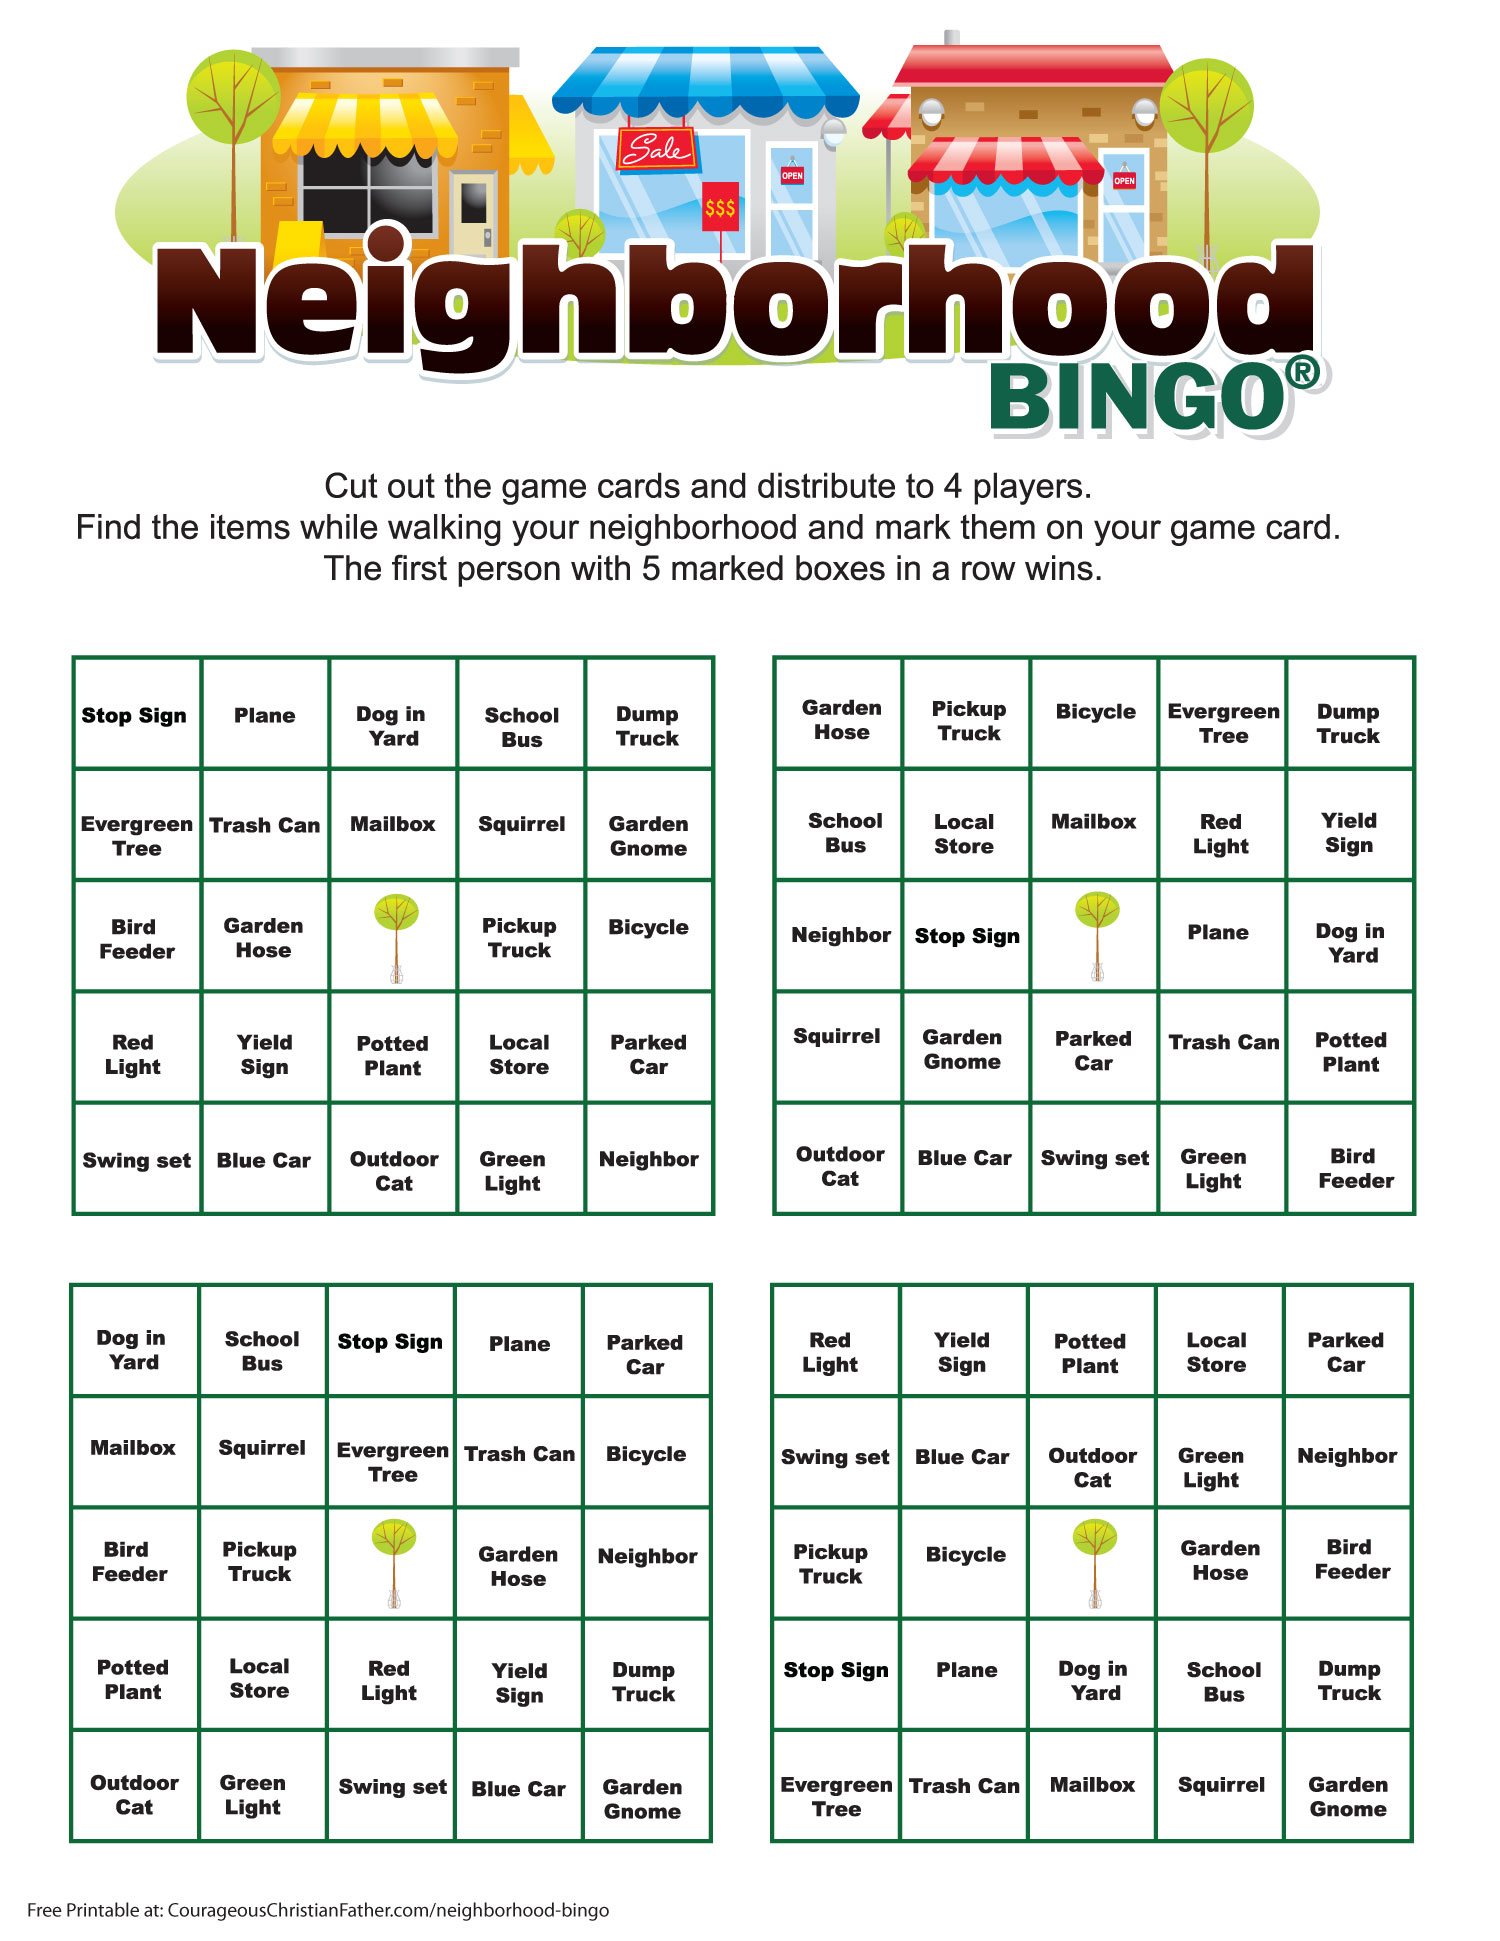 Neighborhood Bingo Printable - A Free bingo printable to do in teams of 4 in your neighborhood. #Bingo #NeighborhoodBingo